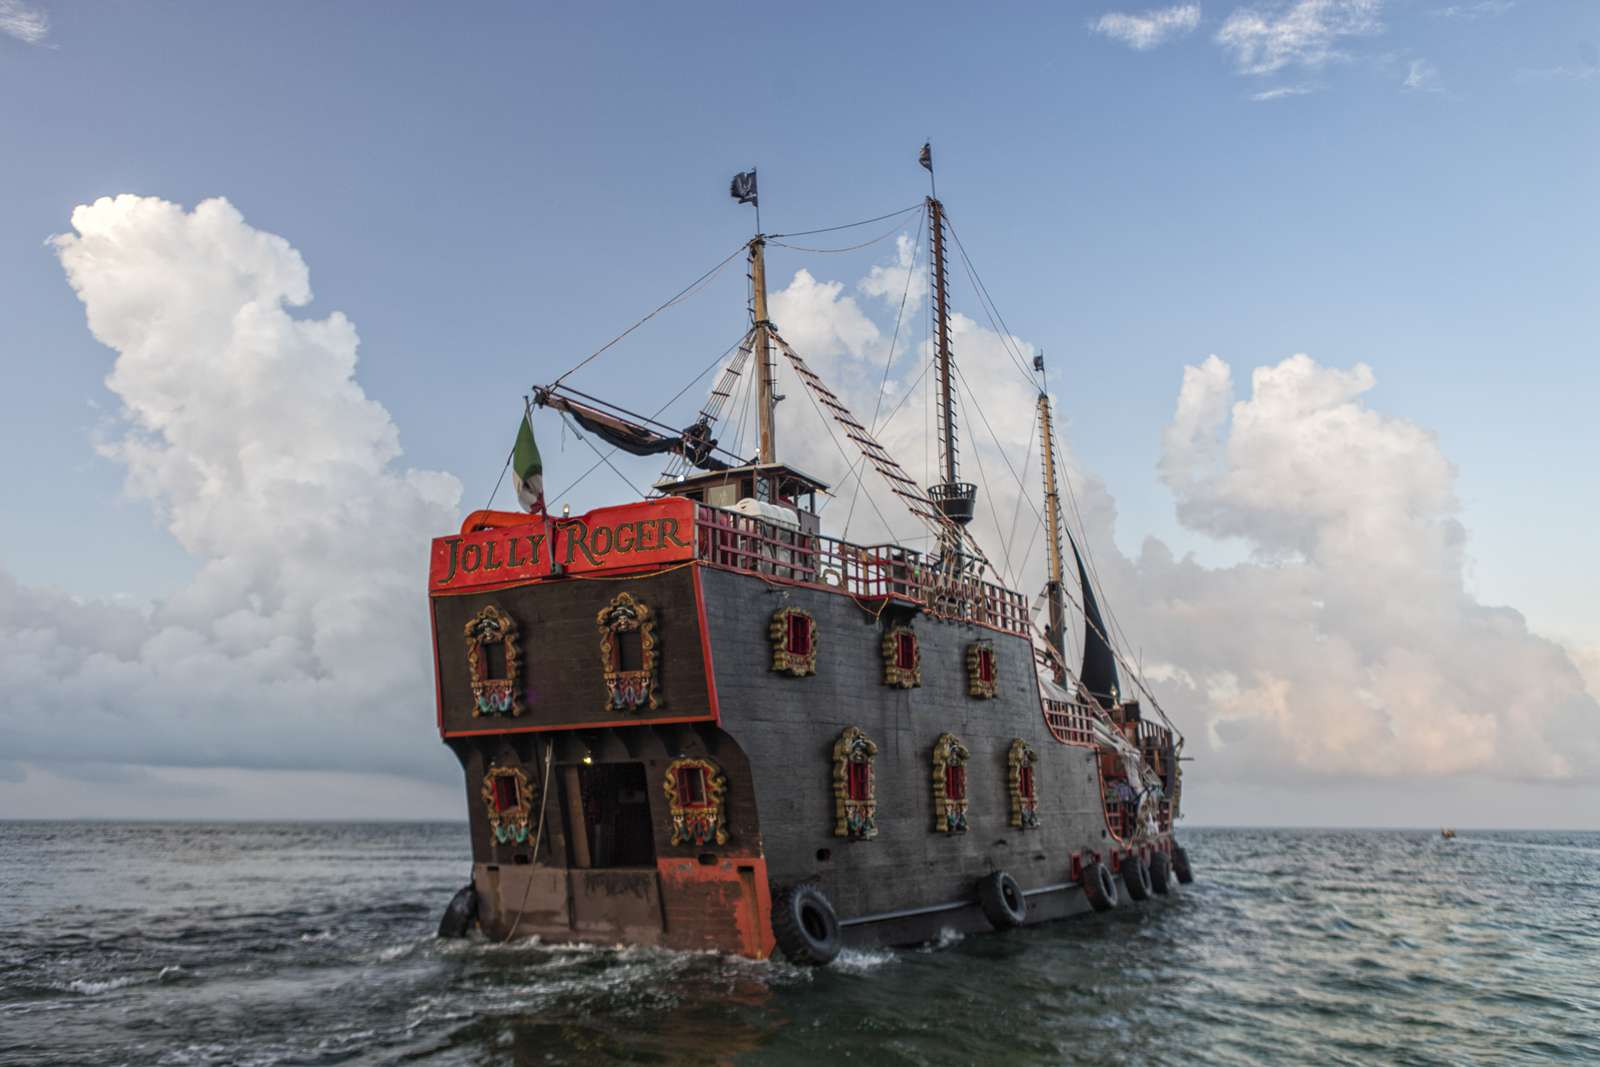 Pirate ship called Jolly Roger, modeled to look like the Santa Maria